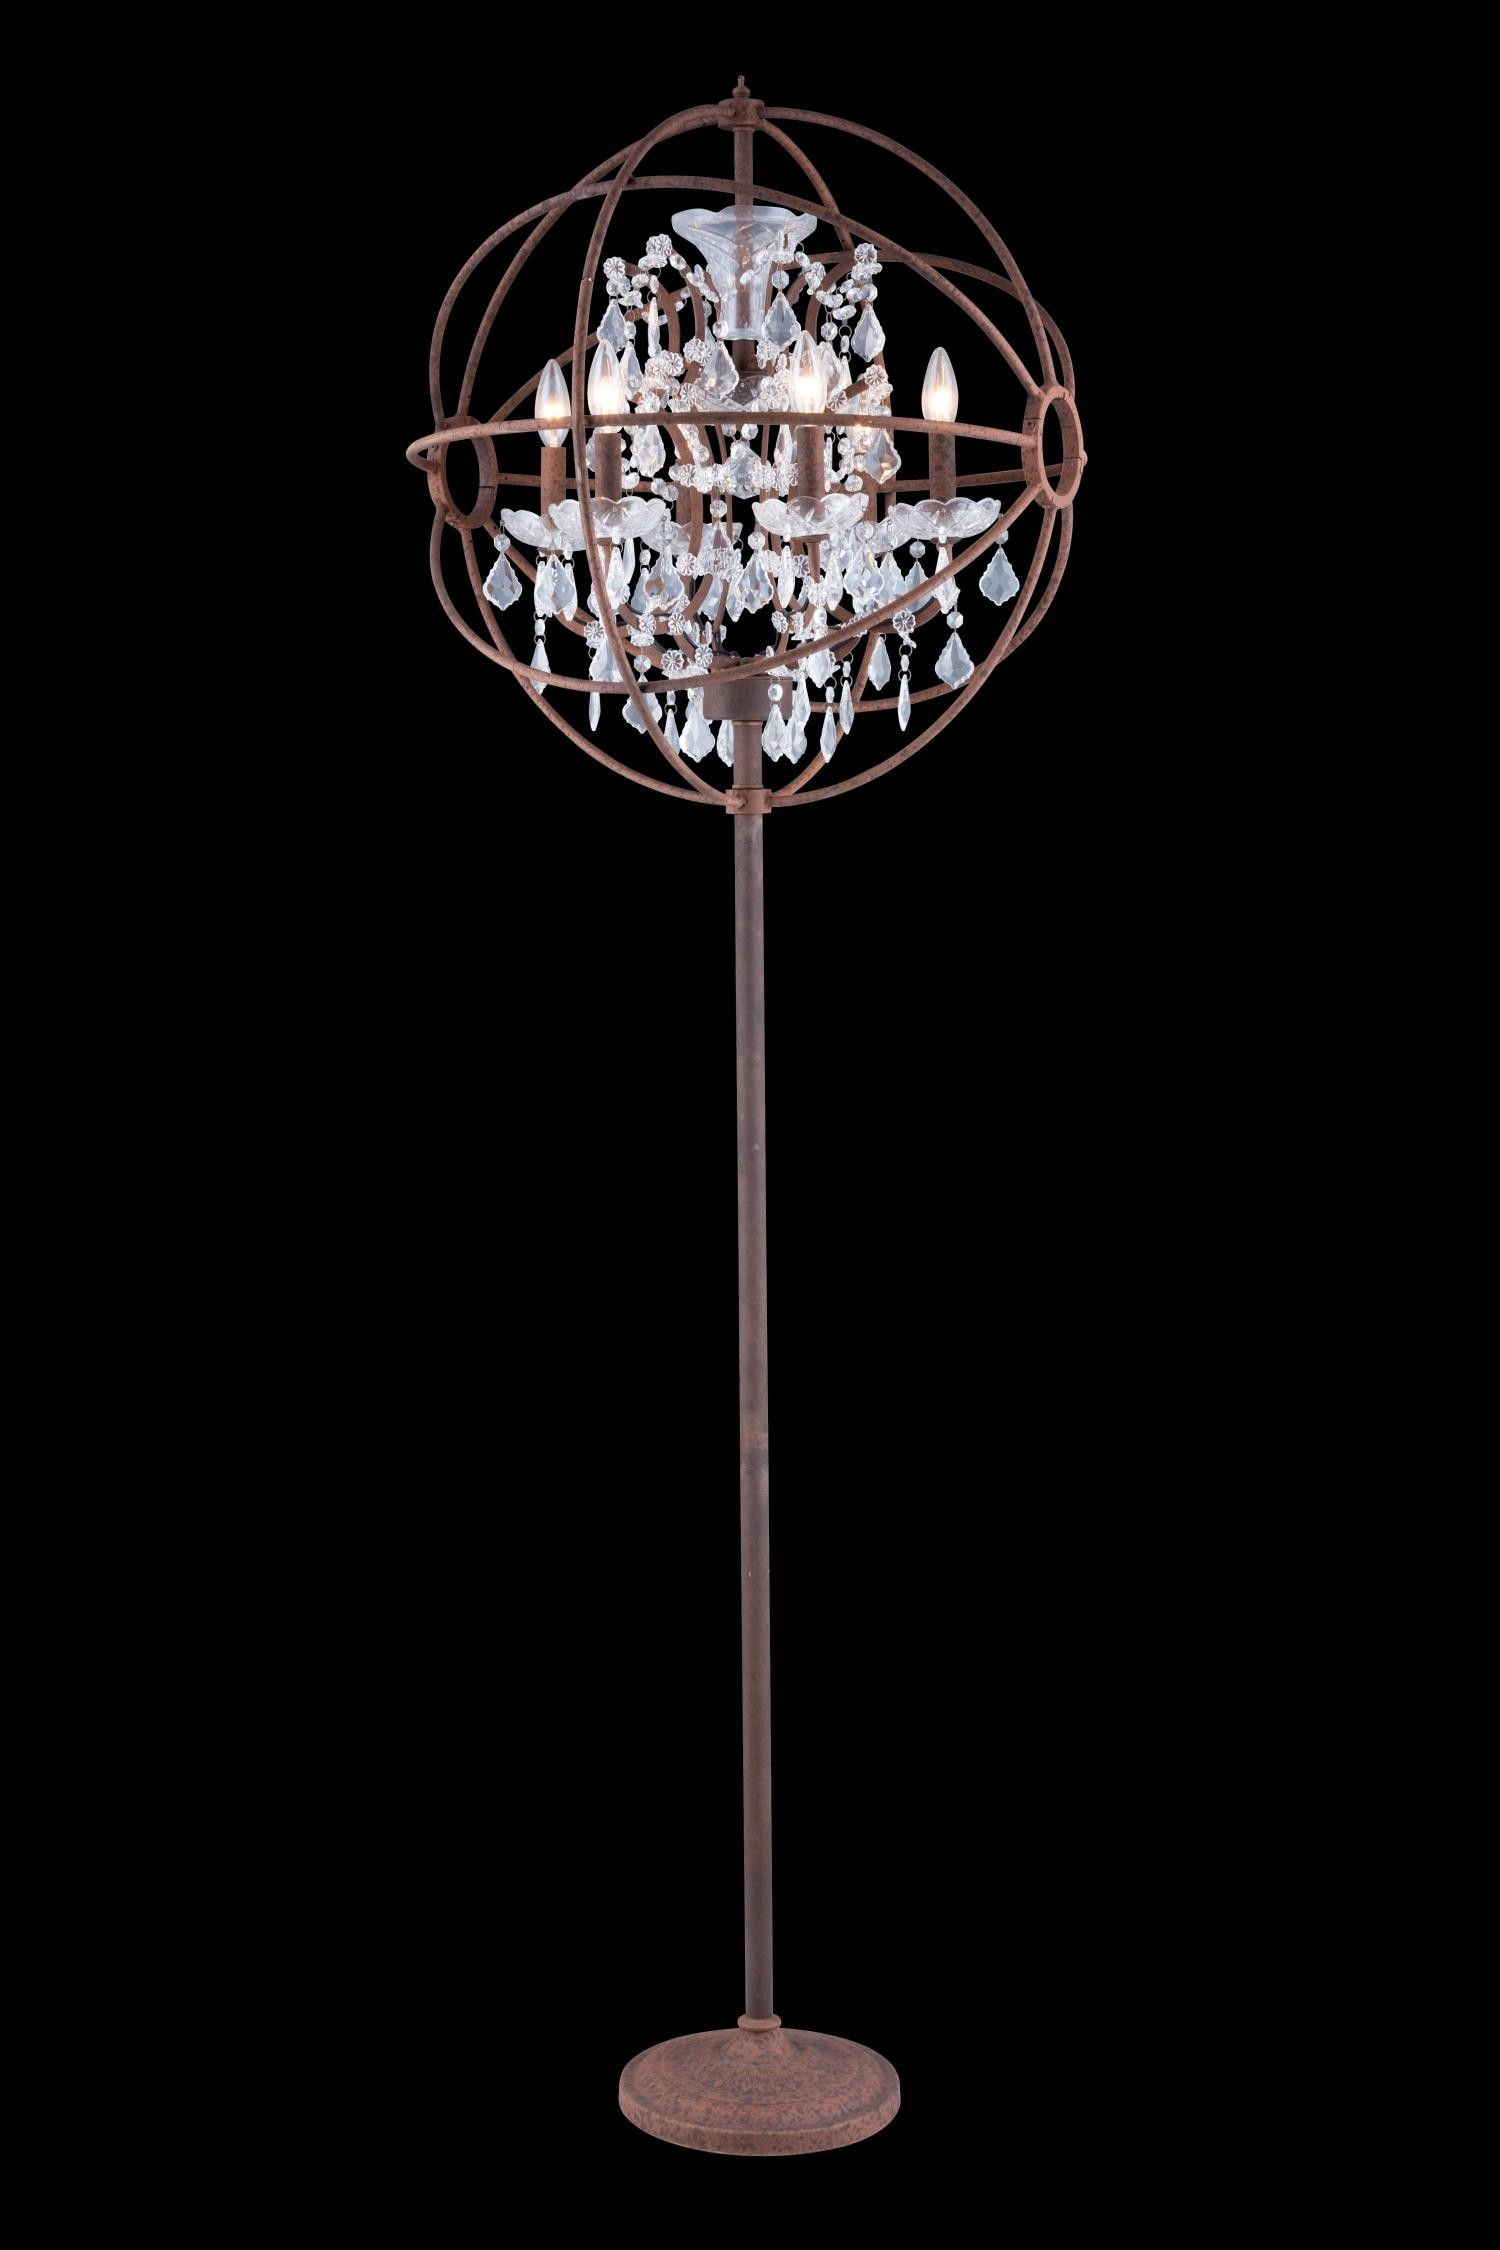 Lights Tall Chandelier Lamp Crystal Floor Lamp Horchow Lamps Sale With Regard To Chandelier Standing Lamps (Image 19 of 25)